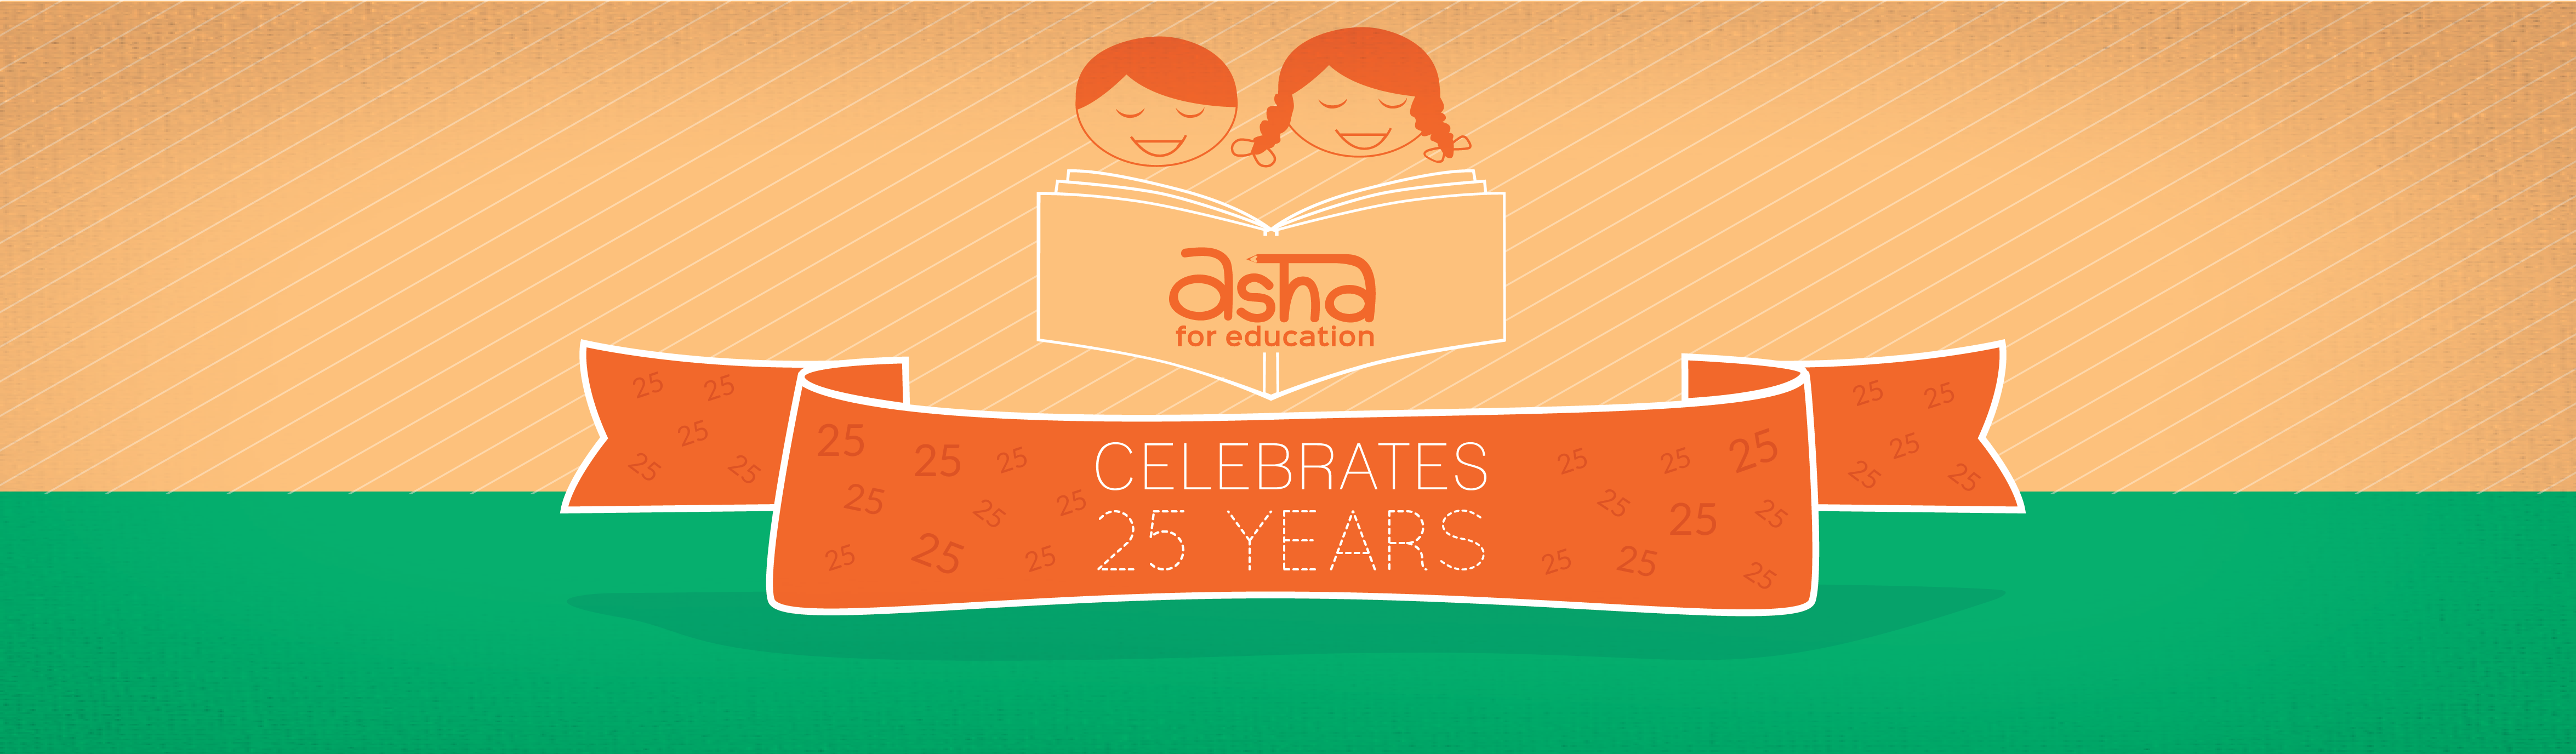 The Atlanta chapter of Asha for Education